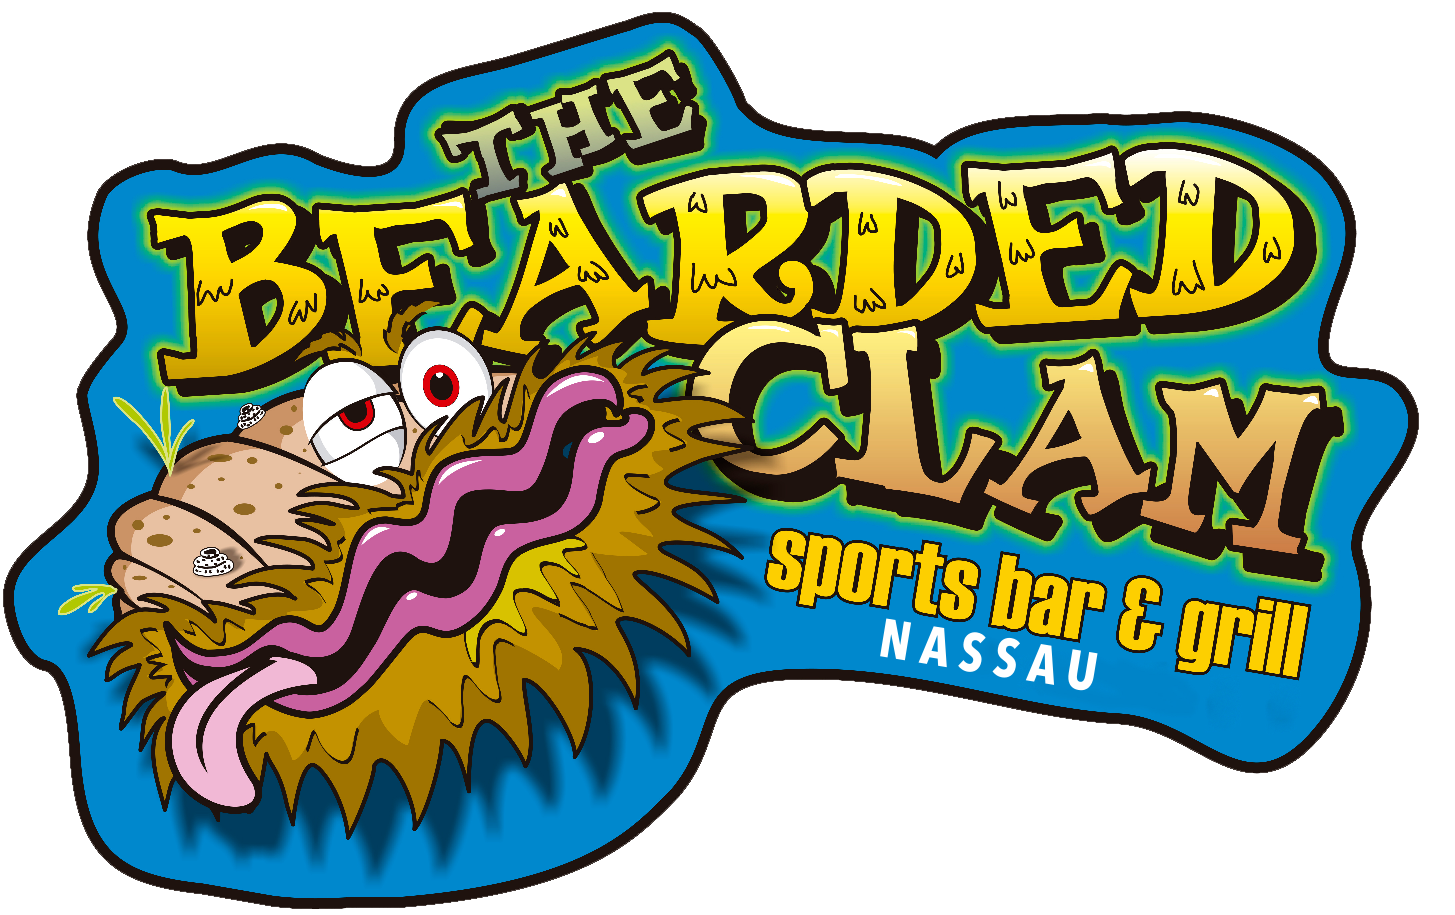 - Cant make it to Belize? As of 2015, Laura and her husband Chip, decided to open up a sister location in Nassau, Bahamas. Stop by The Bearded Clam any day of the week and you will find the same warm welcome and Belizean inspired food.